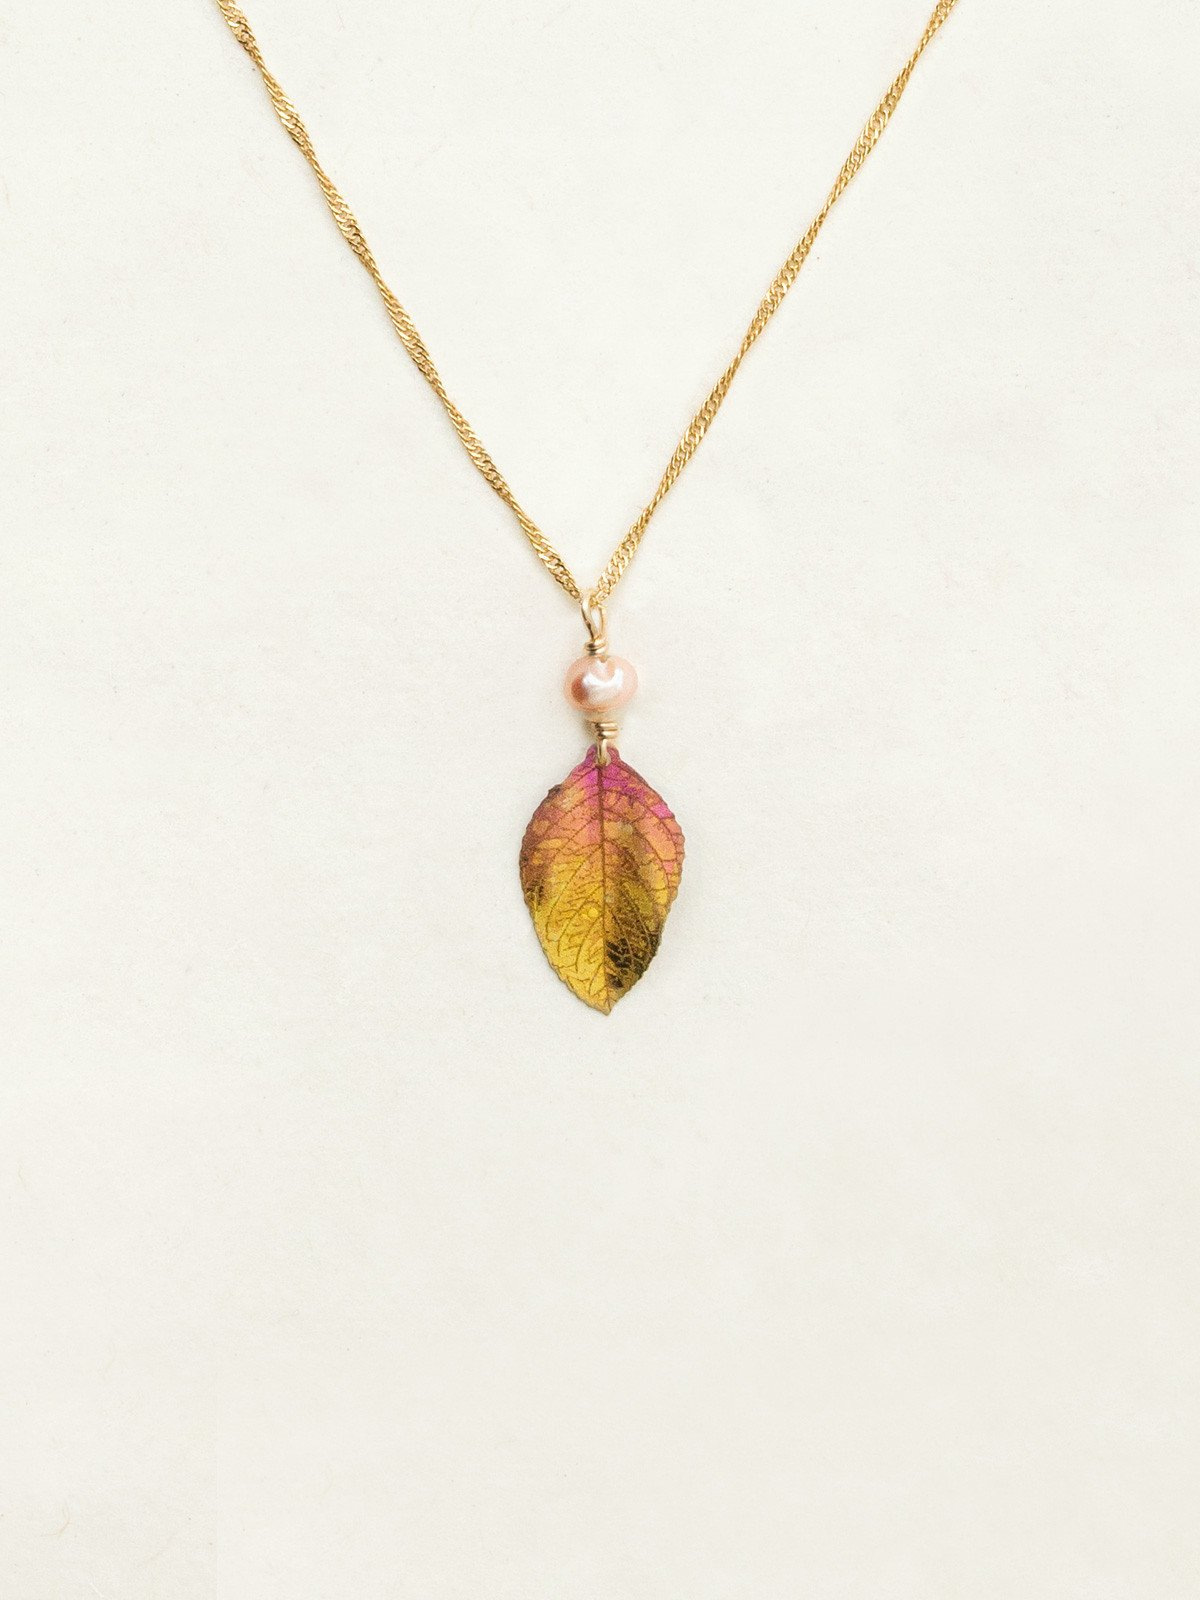 healing leaf necklace by jewelry designer Holly Yashi